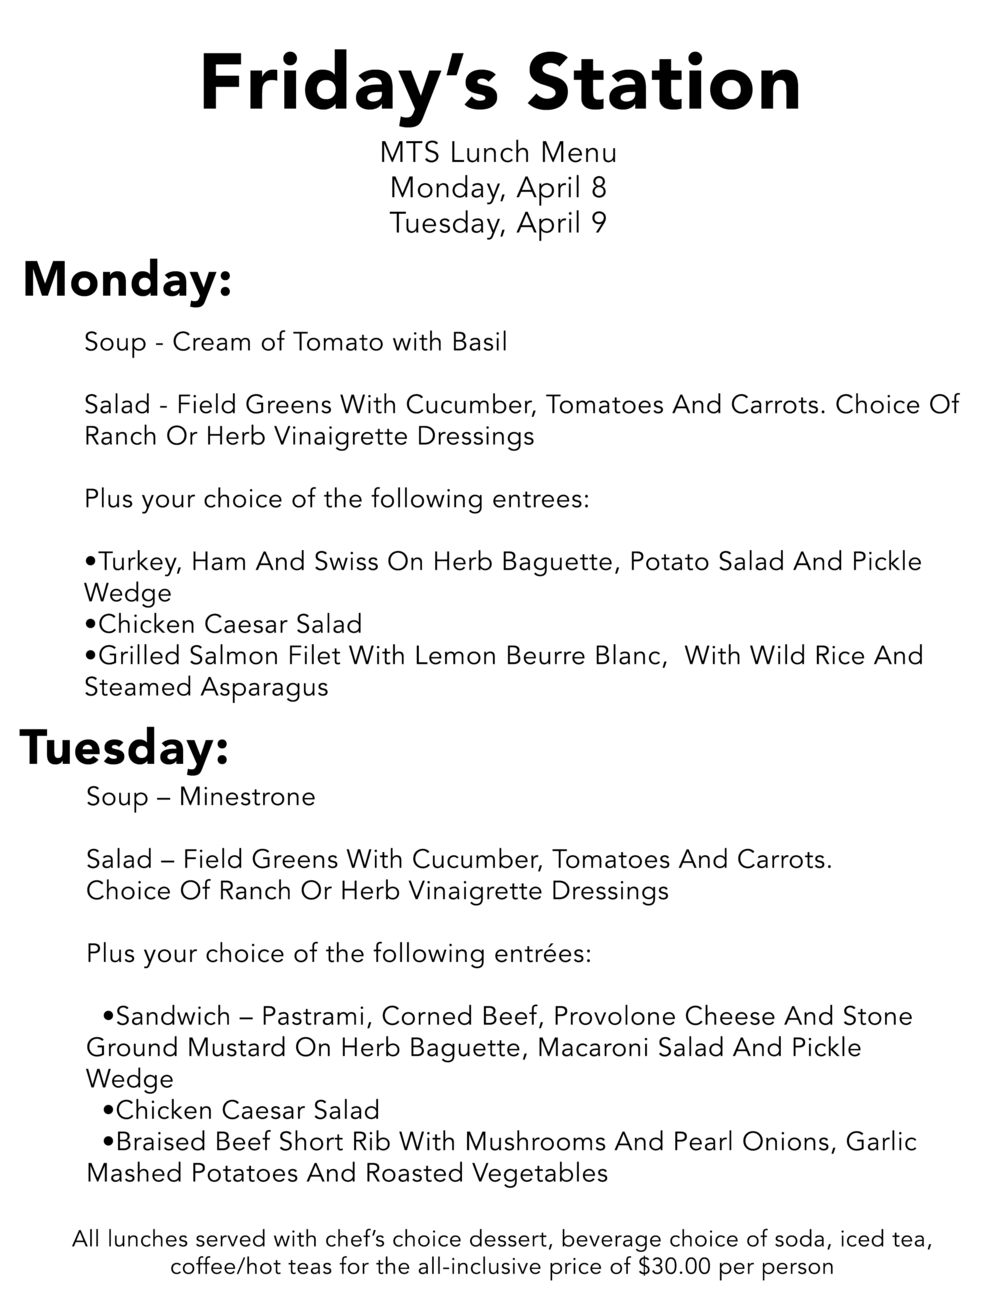 Friday's Station Lunch Menu.png